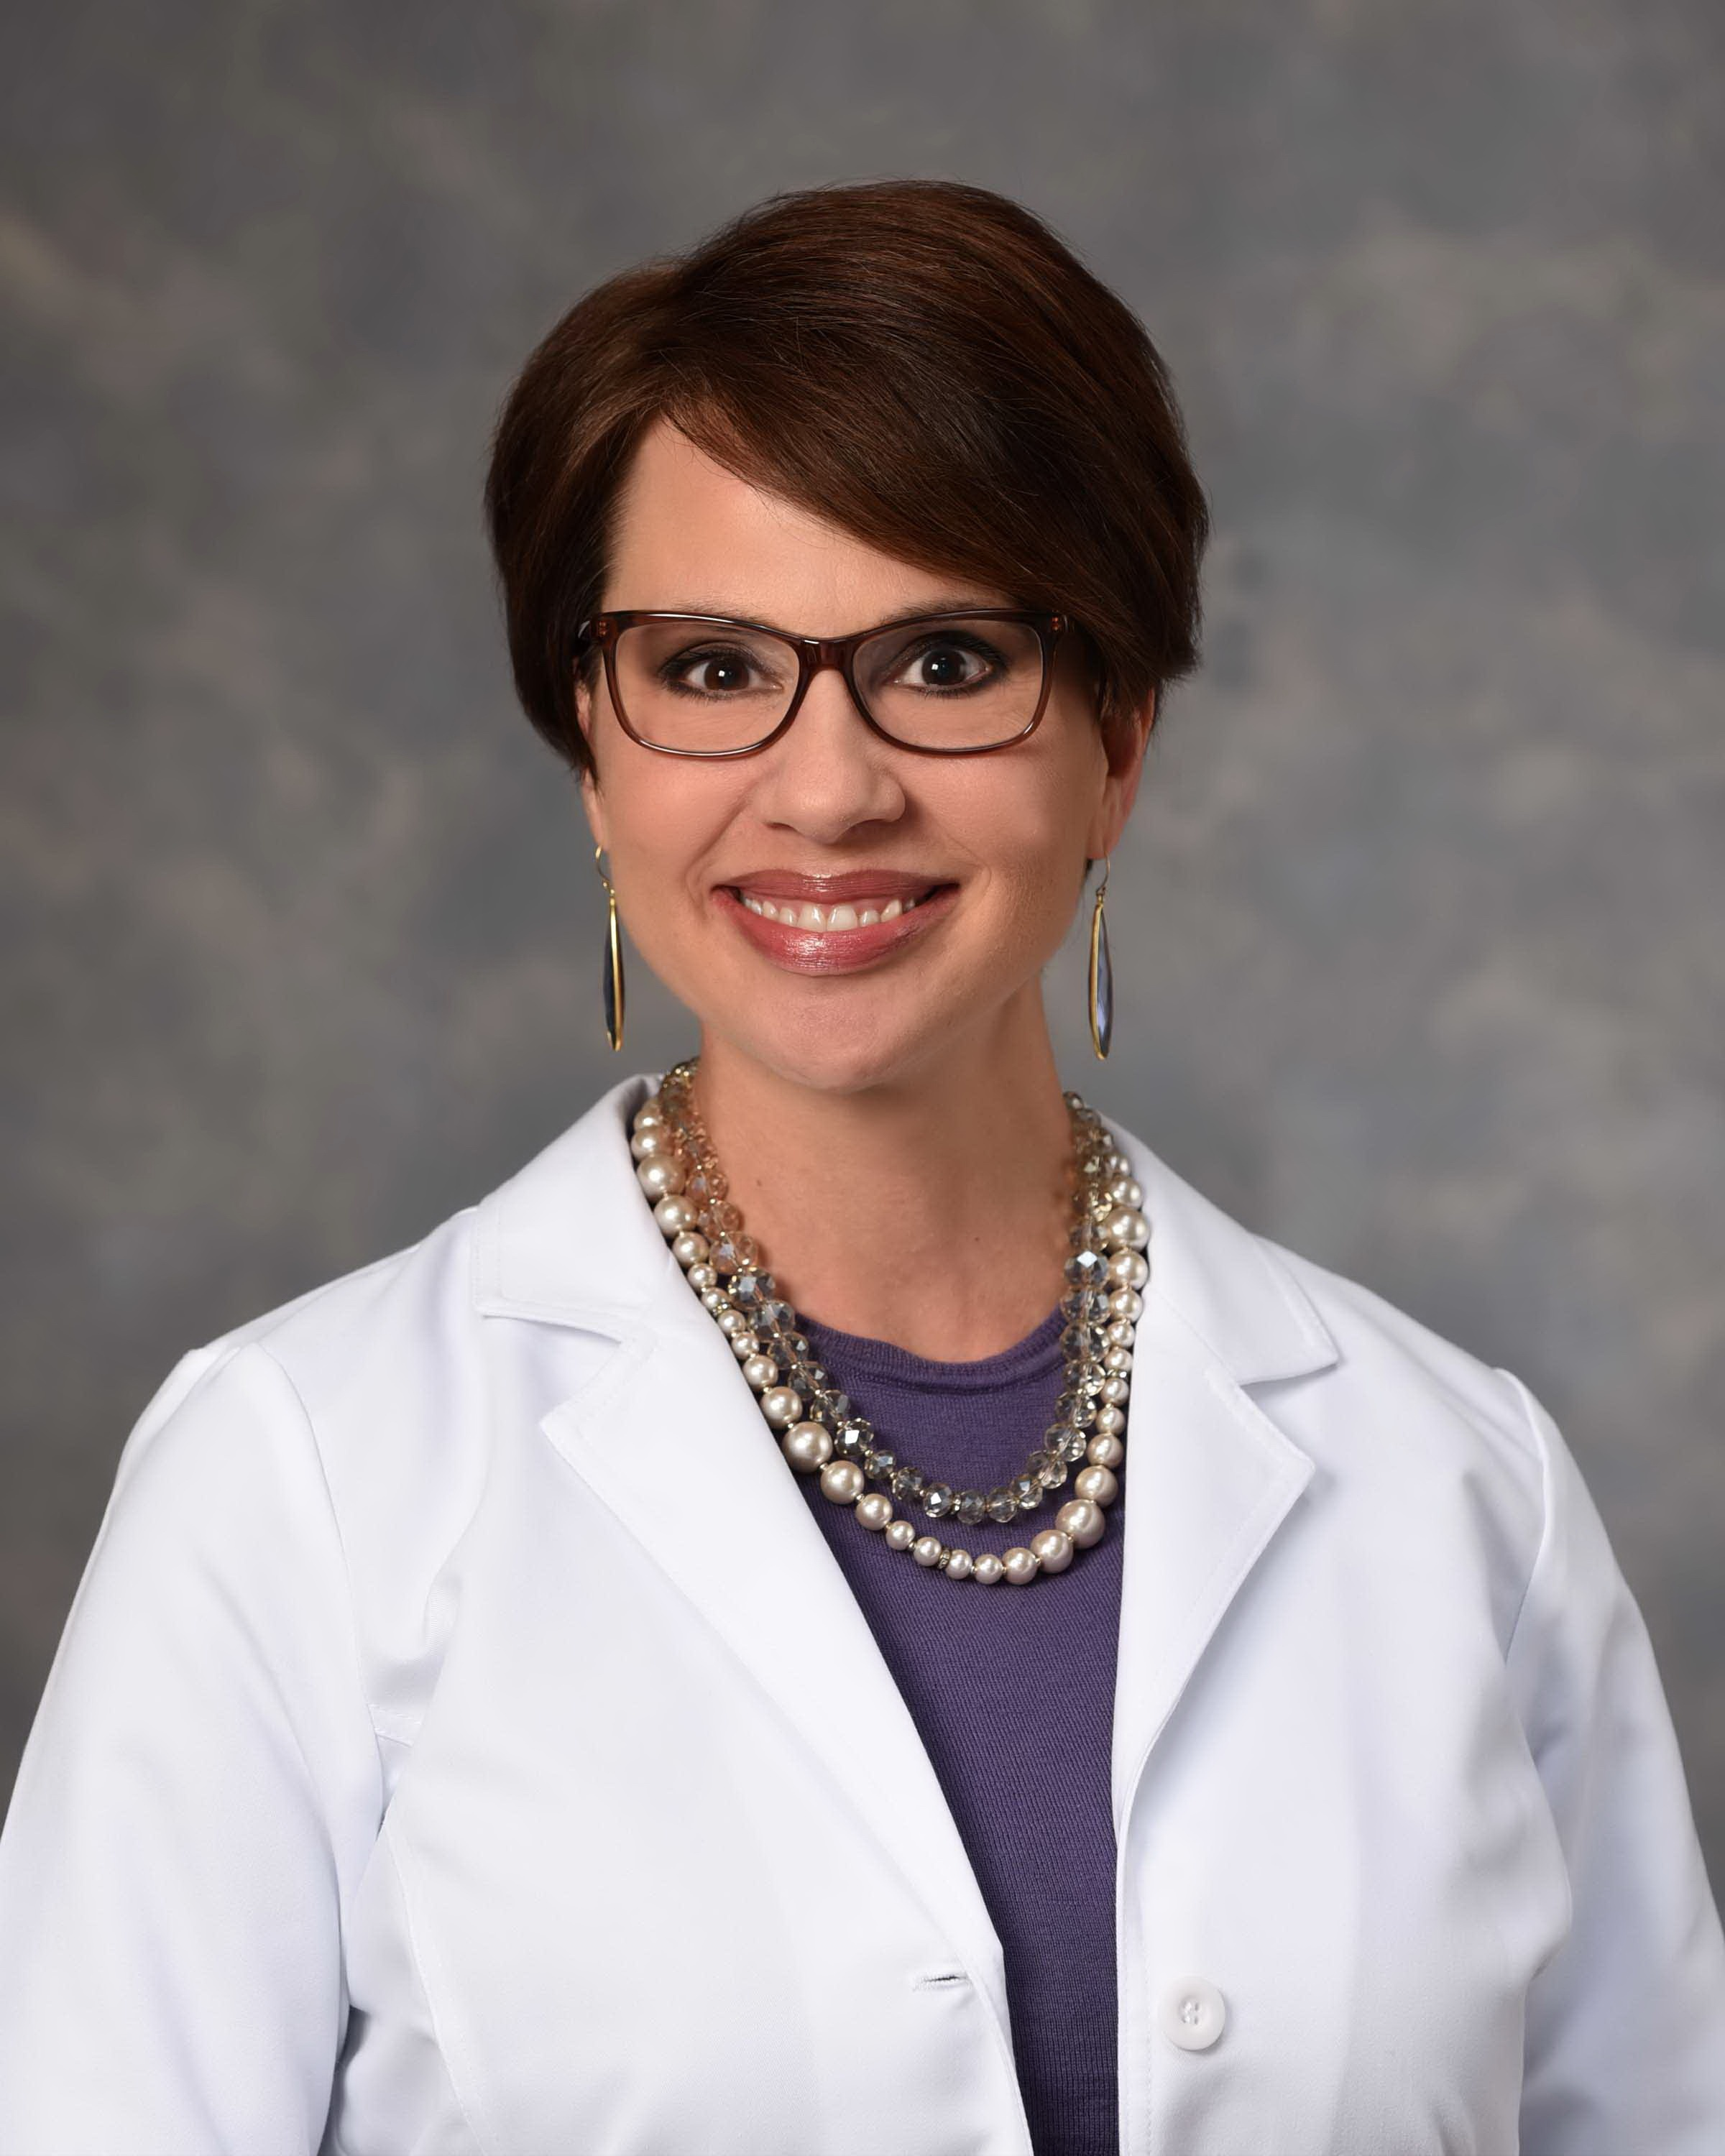 Dr. Heather O'Laughlin